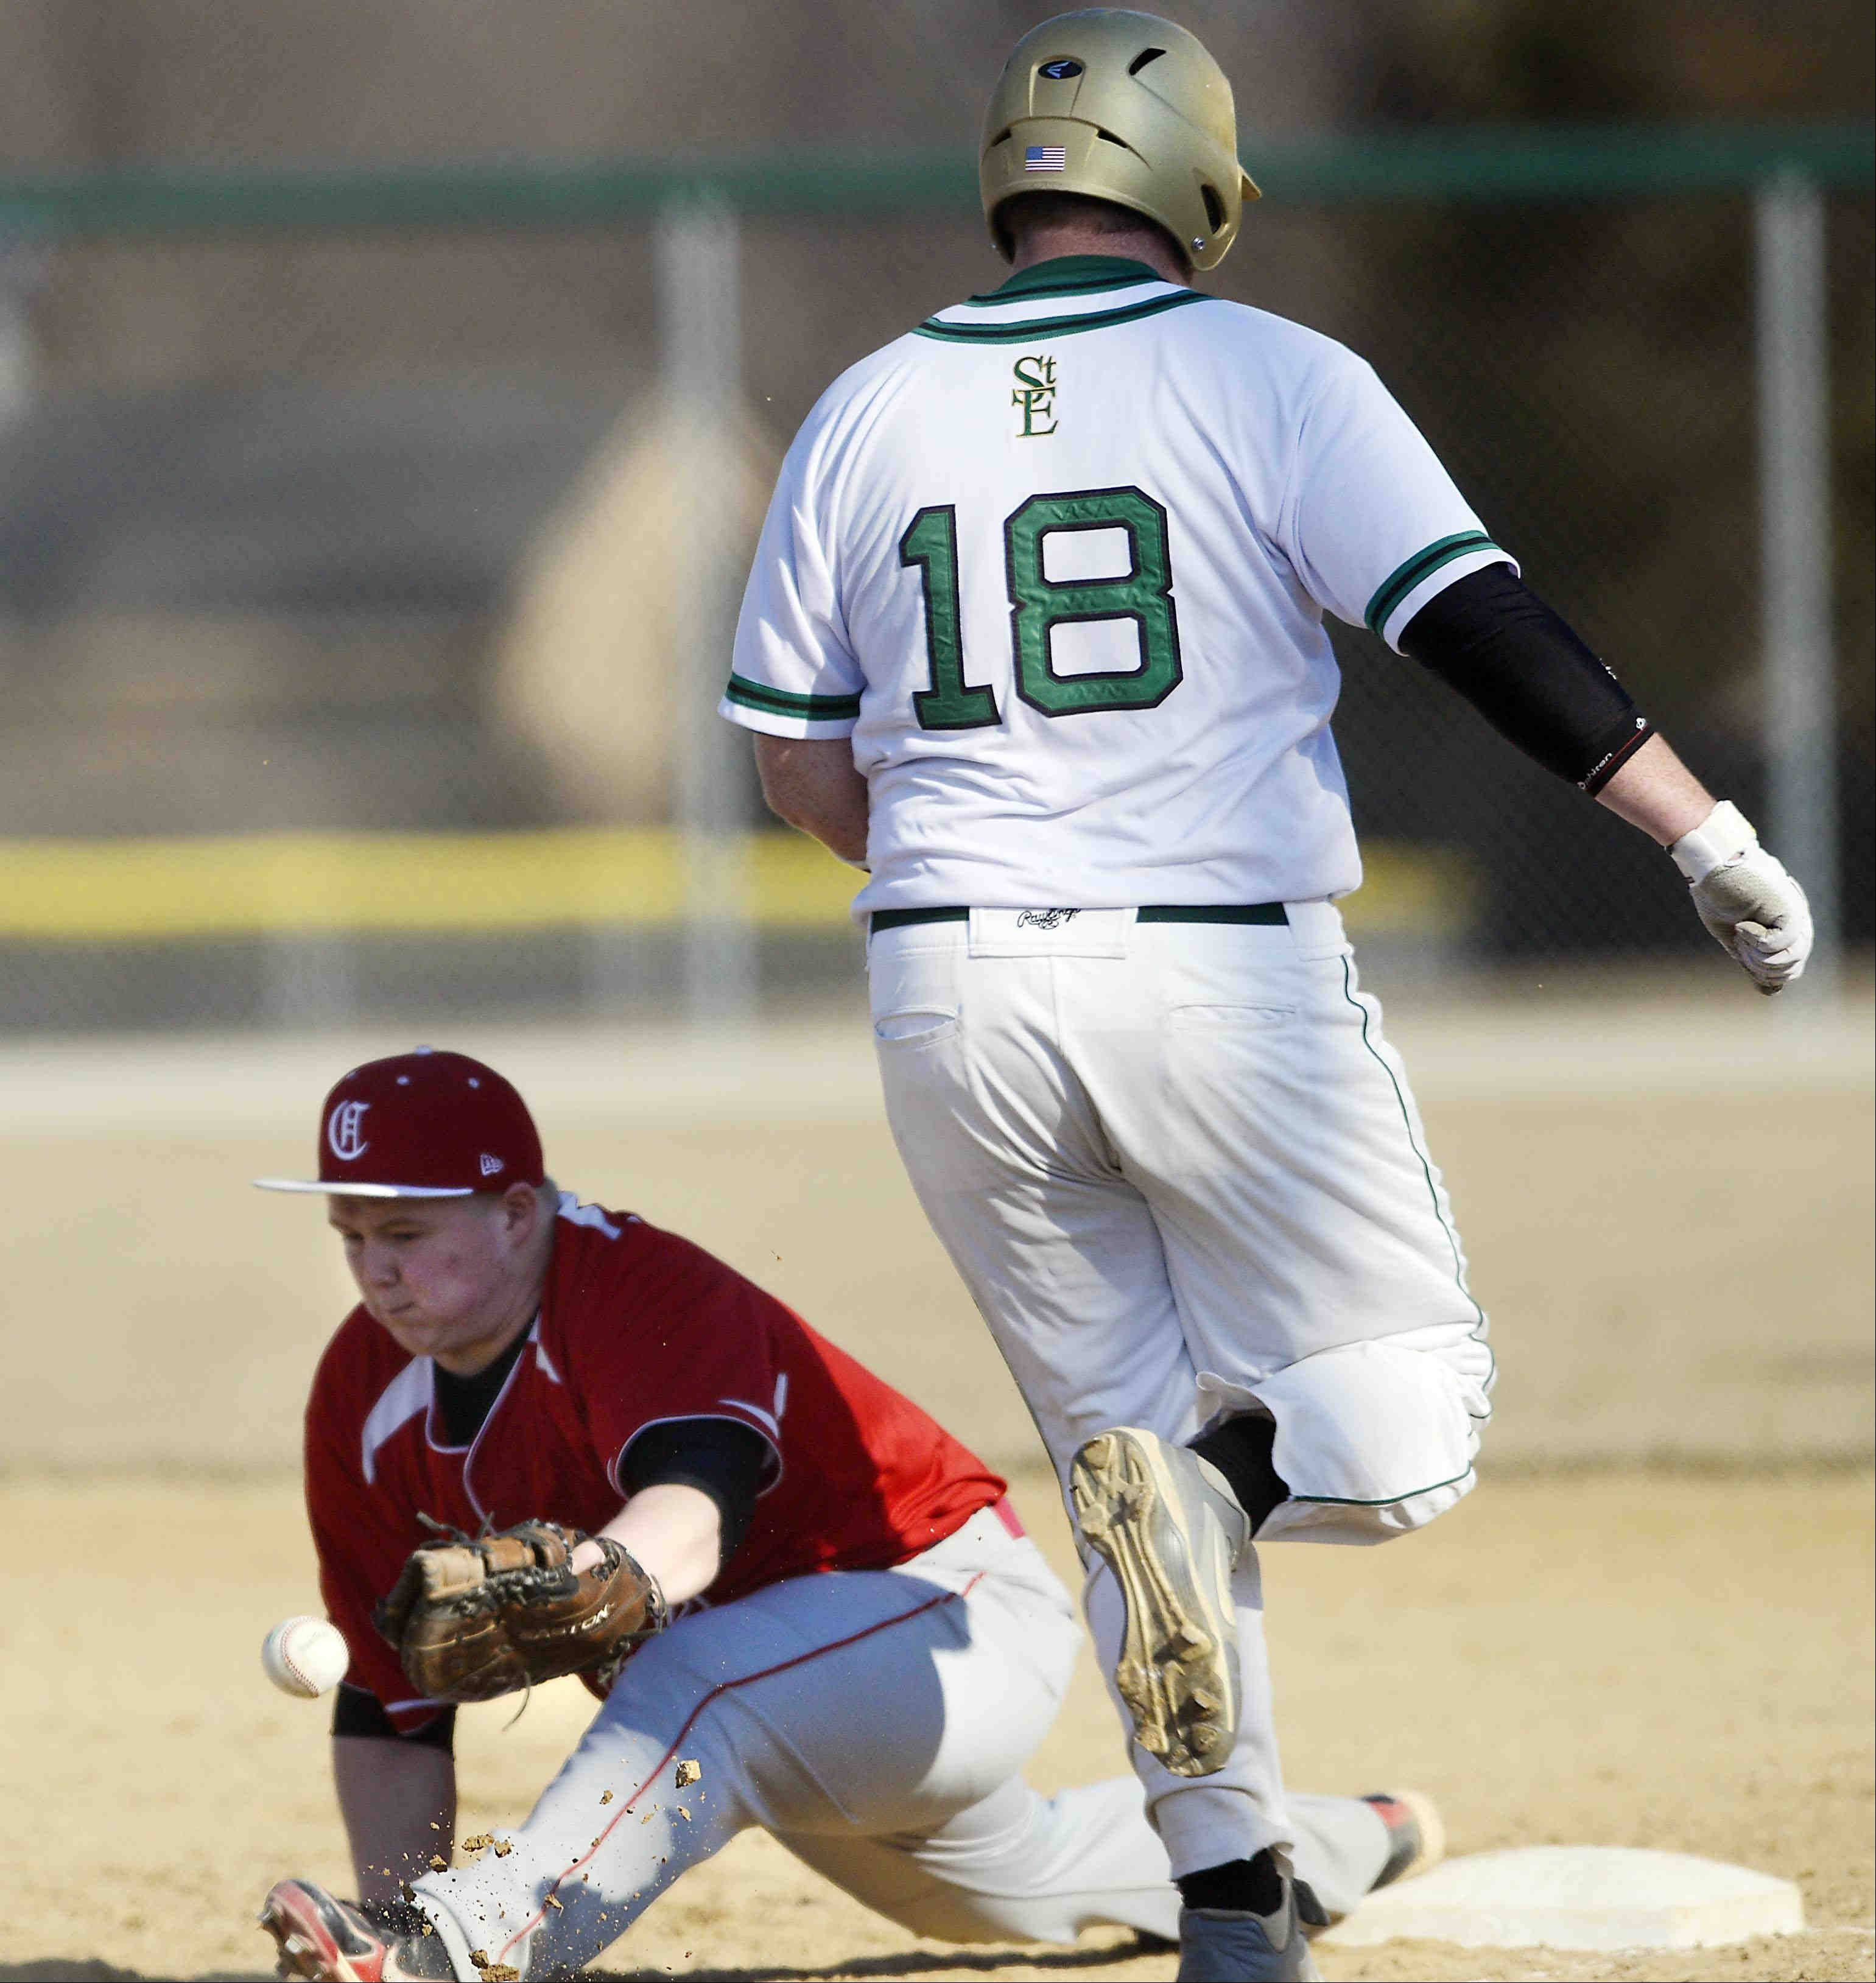 Aurora Christian first baseman Tristin Withrow can't reach a wide throw from third baseman Dustin Barrett as St. Edward's Zach West reaches base safely in the first inning Thursday in Elgin.